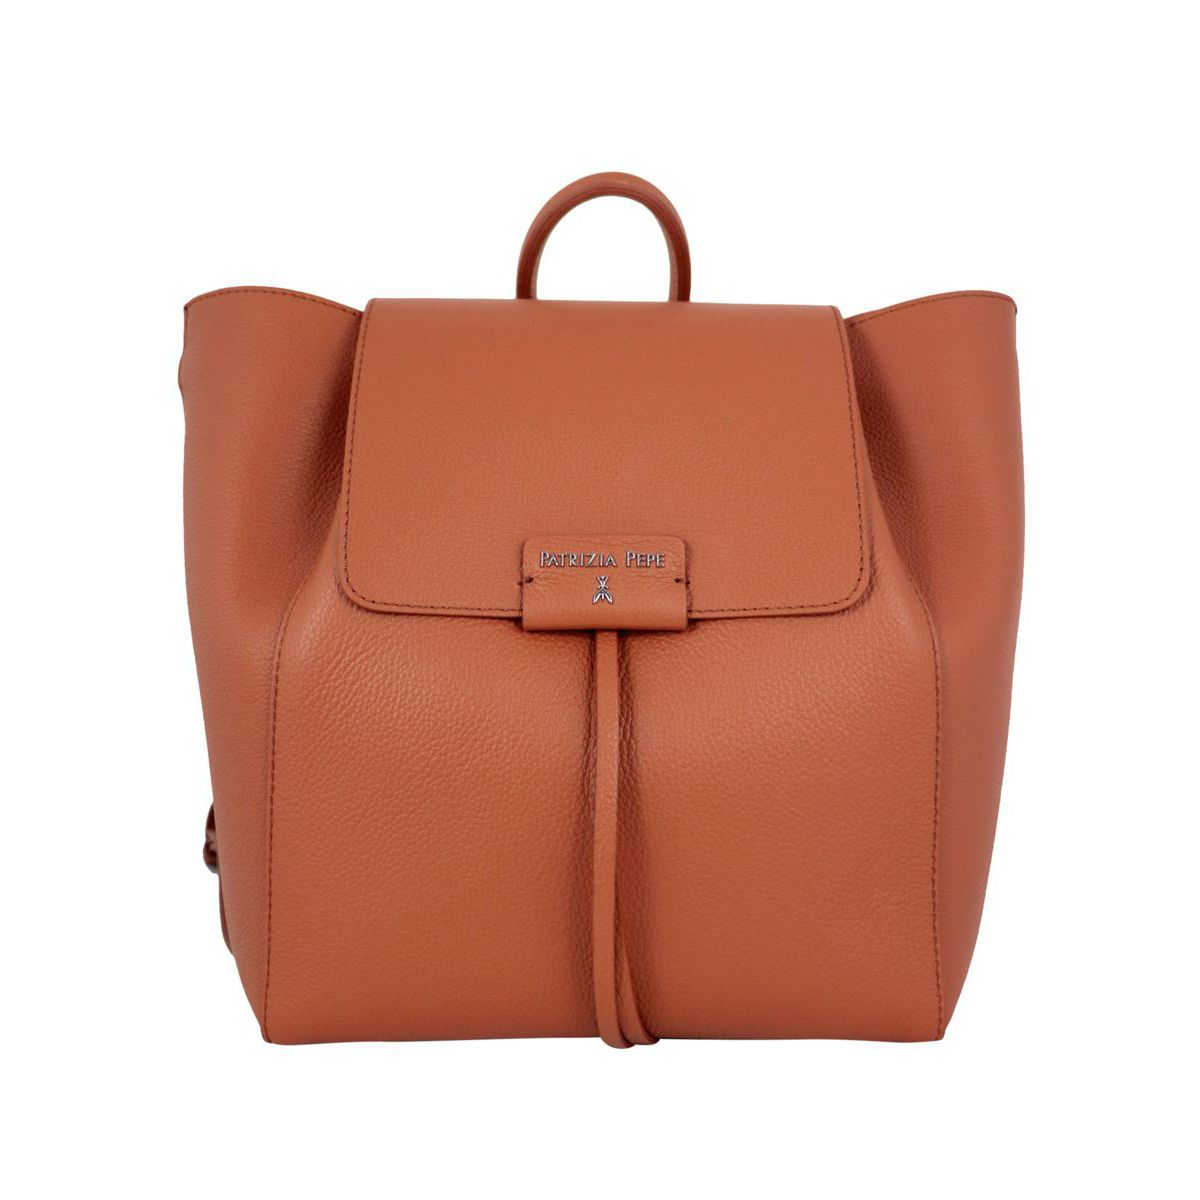 Textured leather backpack with logo Rust Patrizia Pepe